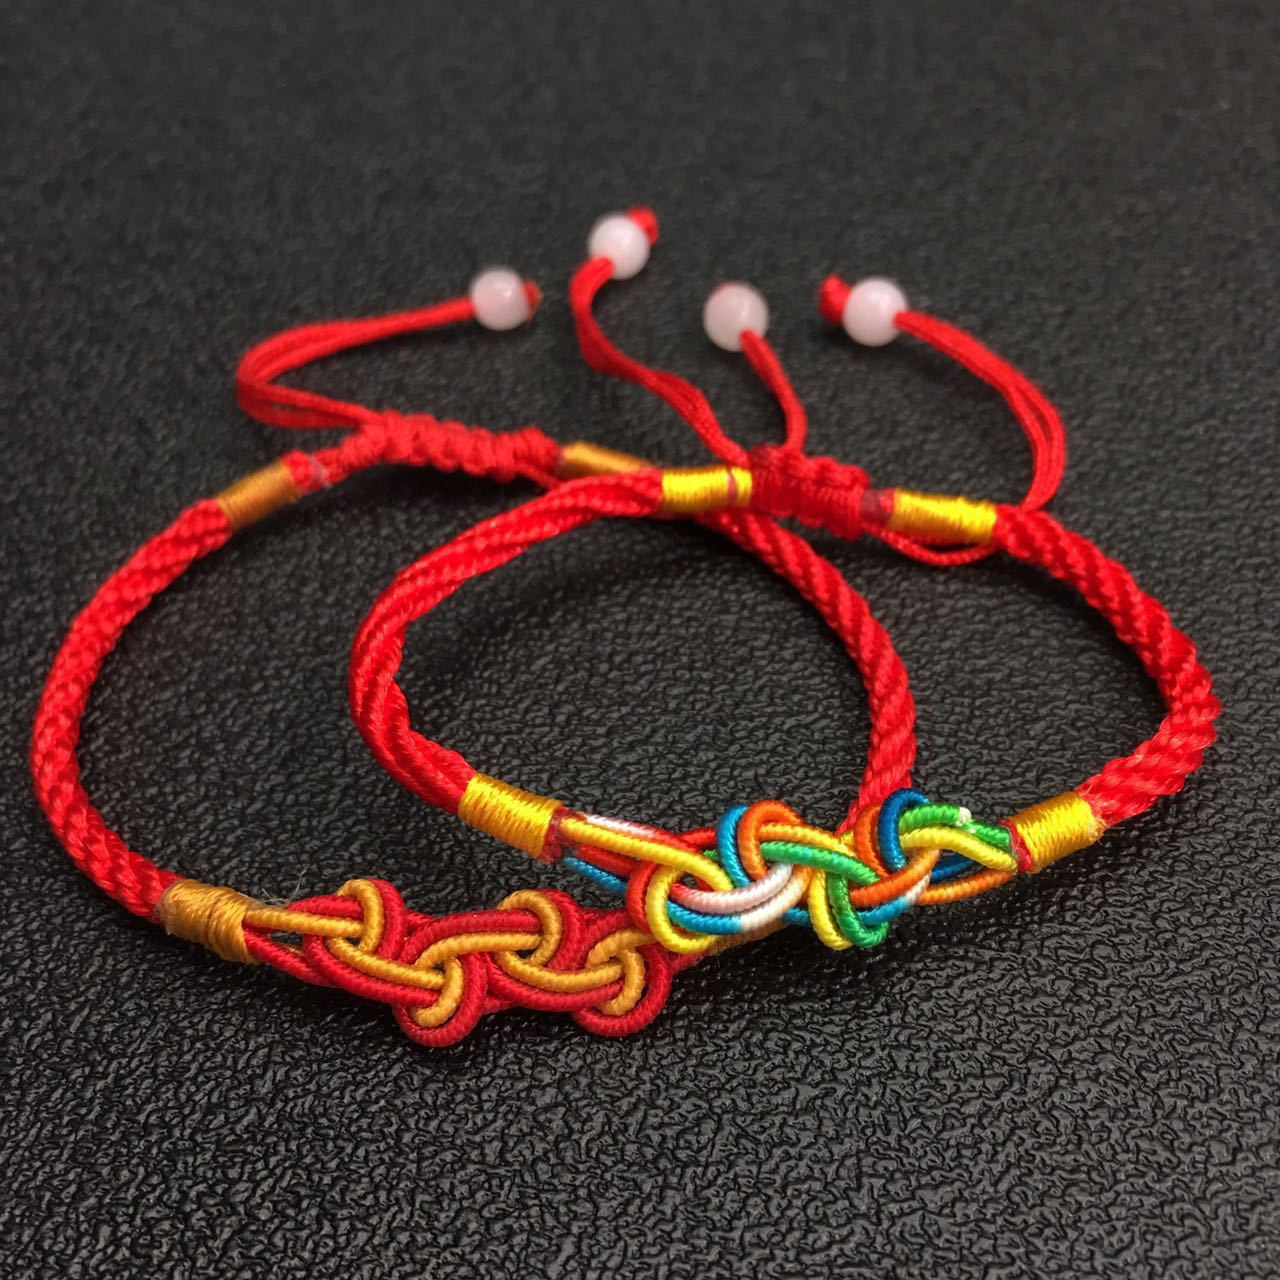 Personalized Hand Woven Red String Bracelet Jewelry DIY Colorful Evil Hand Rope Knot Rainbow Lucky Knot Cord Braided Bracelet